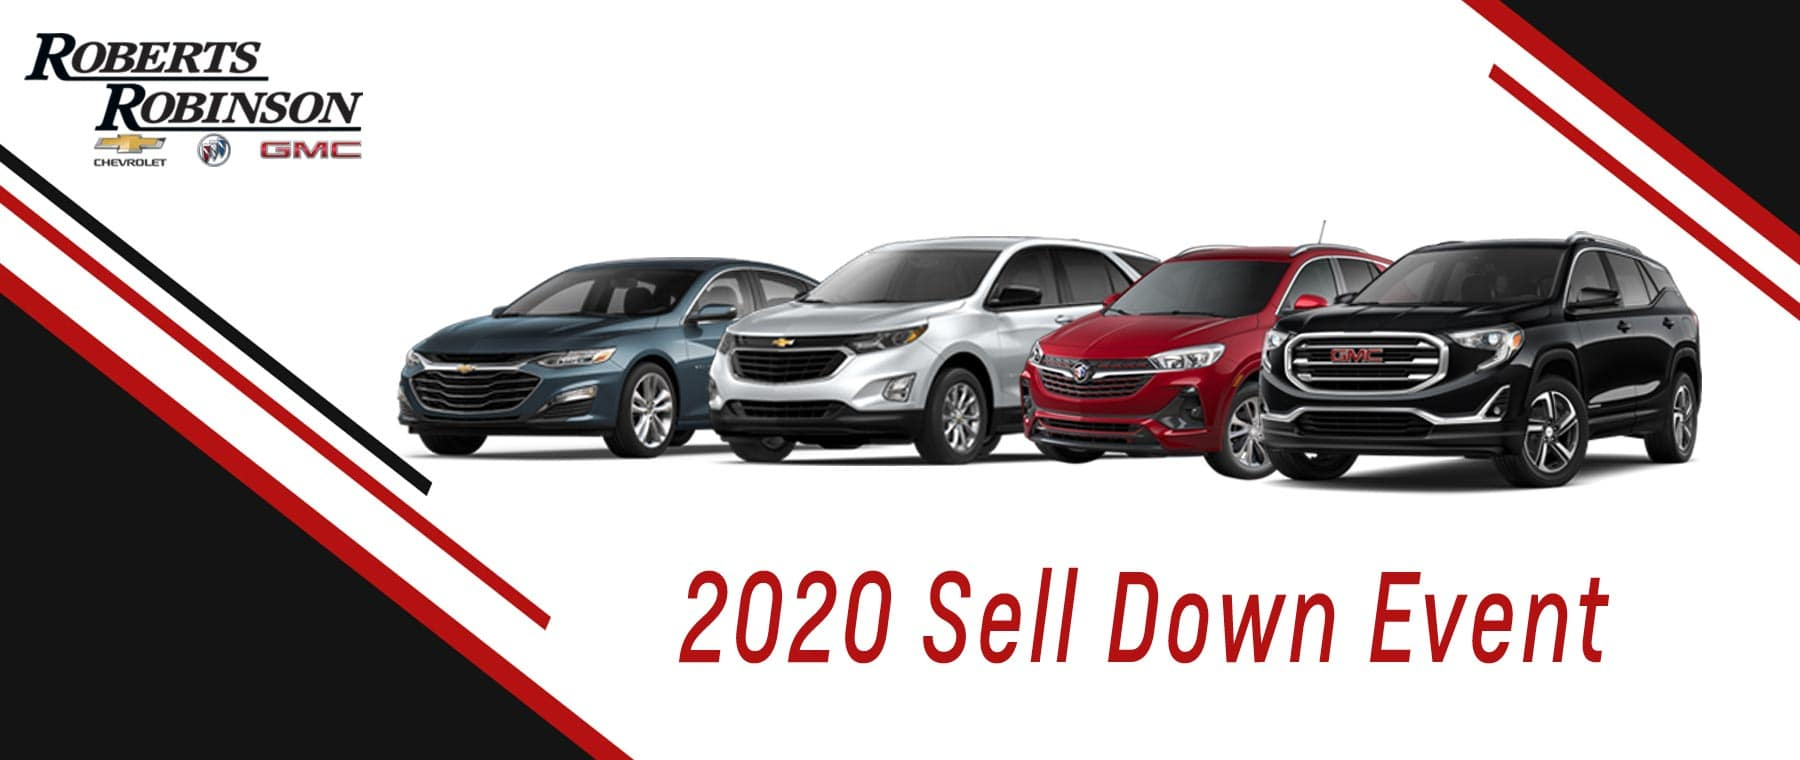 2020 Sell Down Event